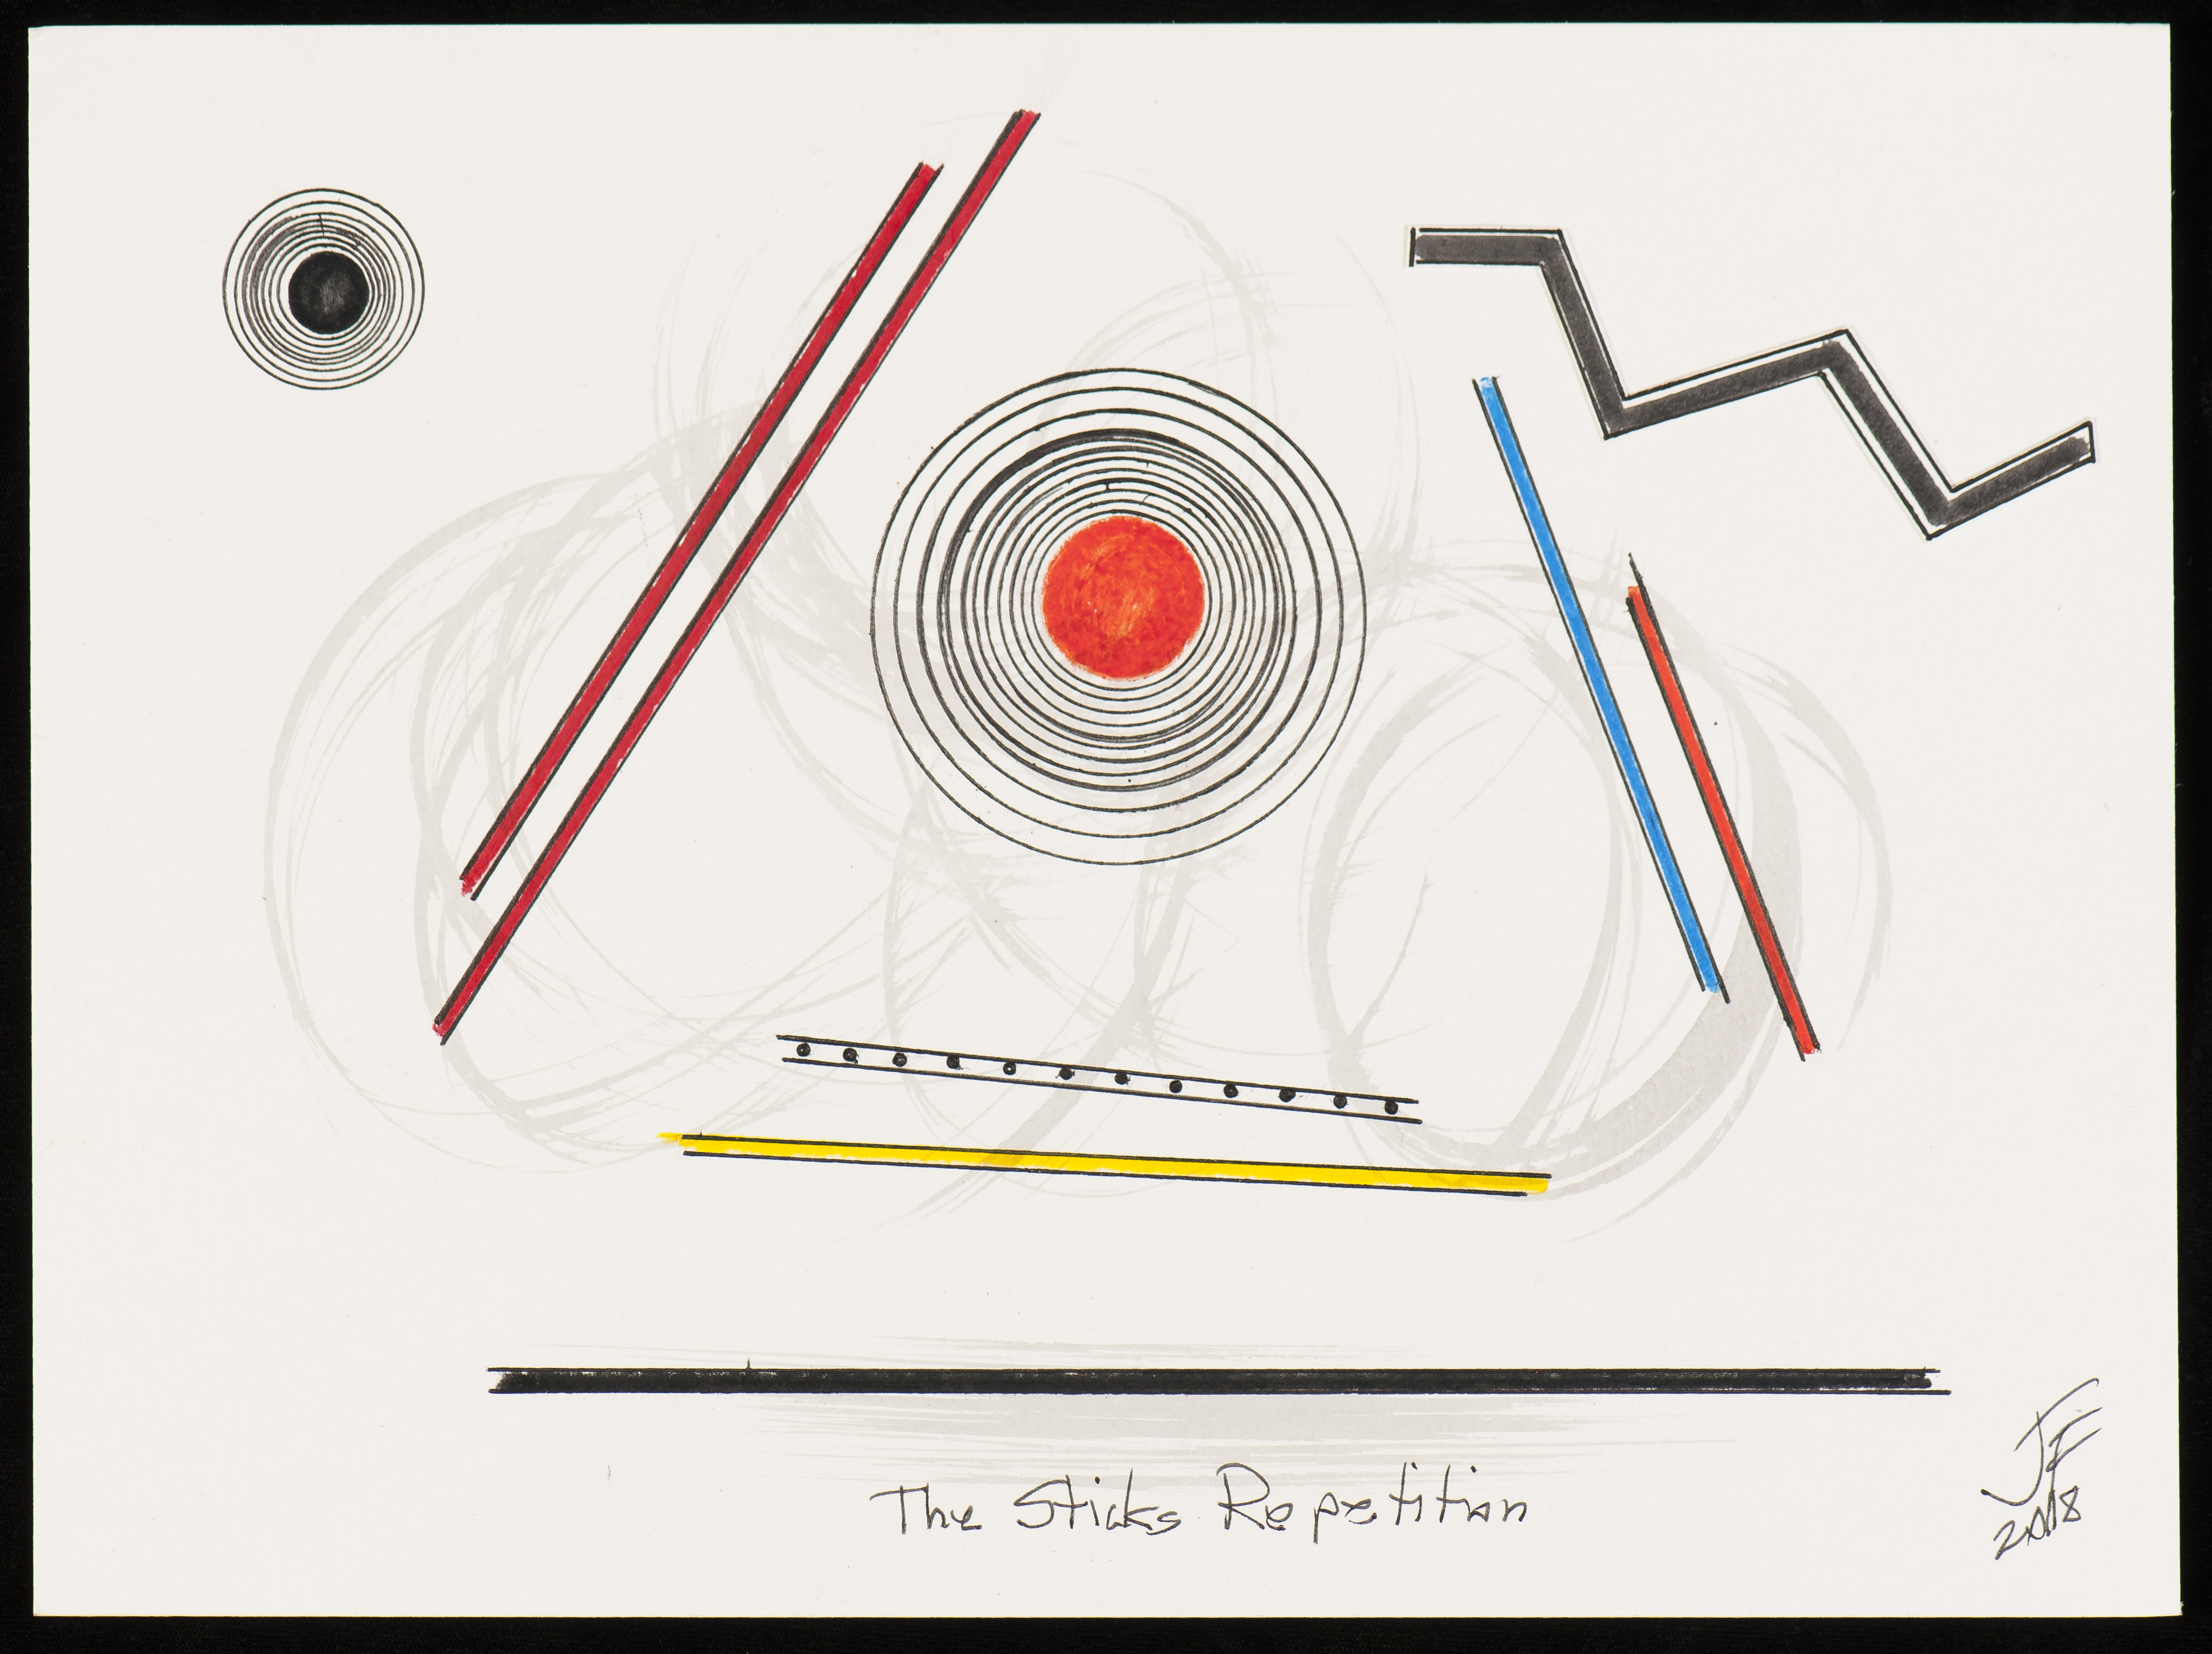 The Sticks Repetition